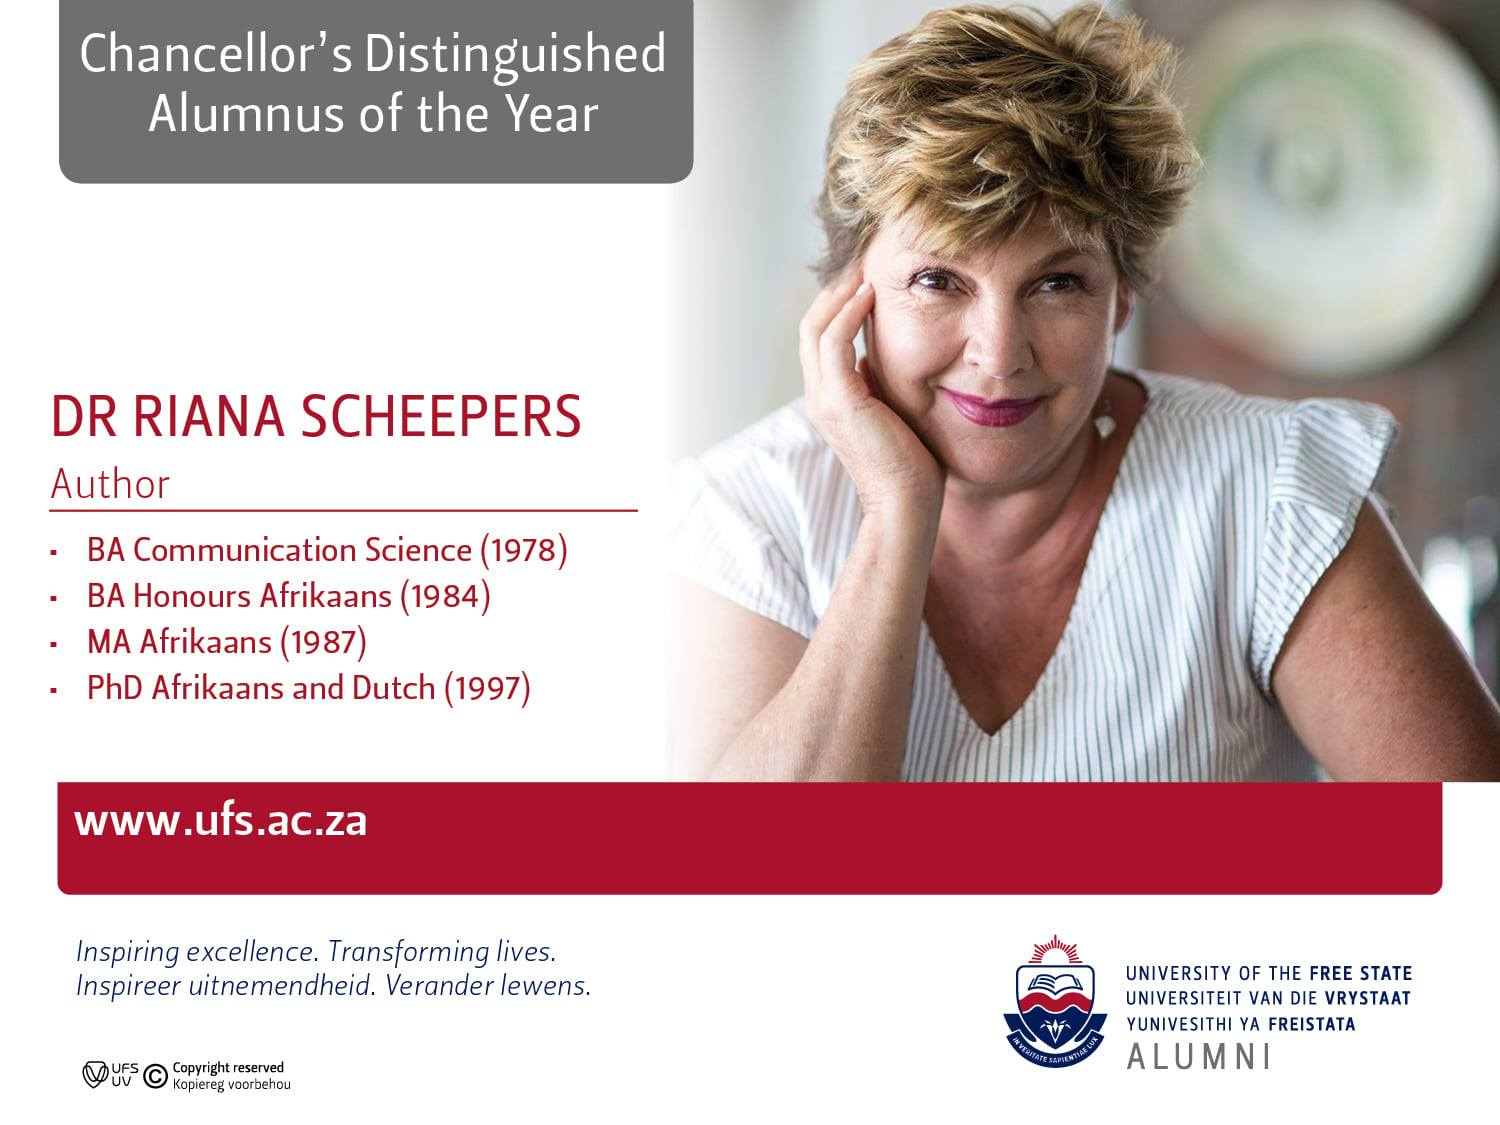 Dr Riana Scheepers